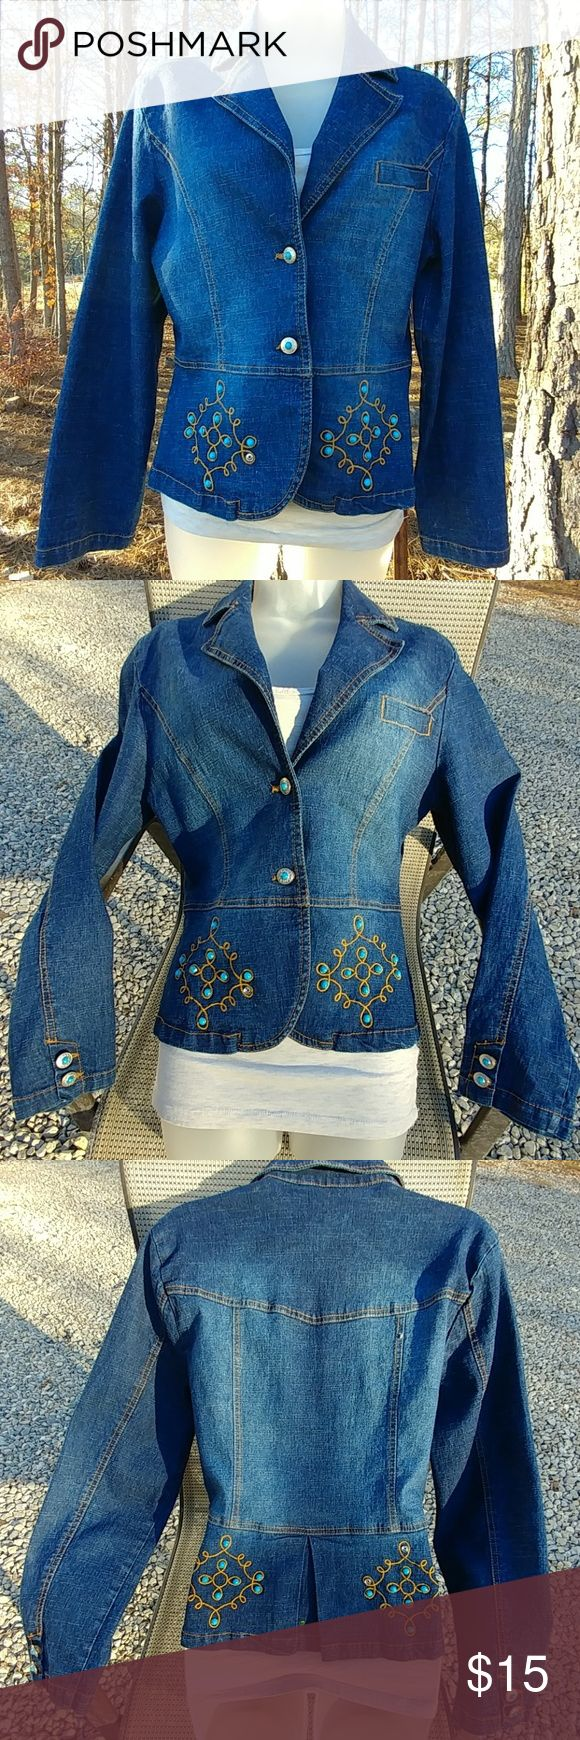 'Vezucci' Western Style Peplum Jean Jacket Dark wash 'Vezucci' peplum, western style lightweight jacket/blazer. Brown embroidery design with faux turquoise stuffing and buttons. 2 button front closure with faux breast pocket. 2 button wrist cuffs. Missing 1 turquoise stud, bottom right front, see pic 1 or 2. 1 small yellow paint spot on tail inside, you can see it in pic 3 if you zoom in. Those are the only 2 small things wrong, otherwise looks New! Price reflects the 2 min or issues. True…